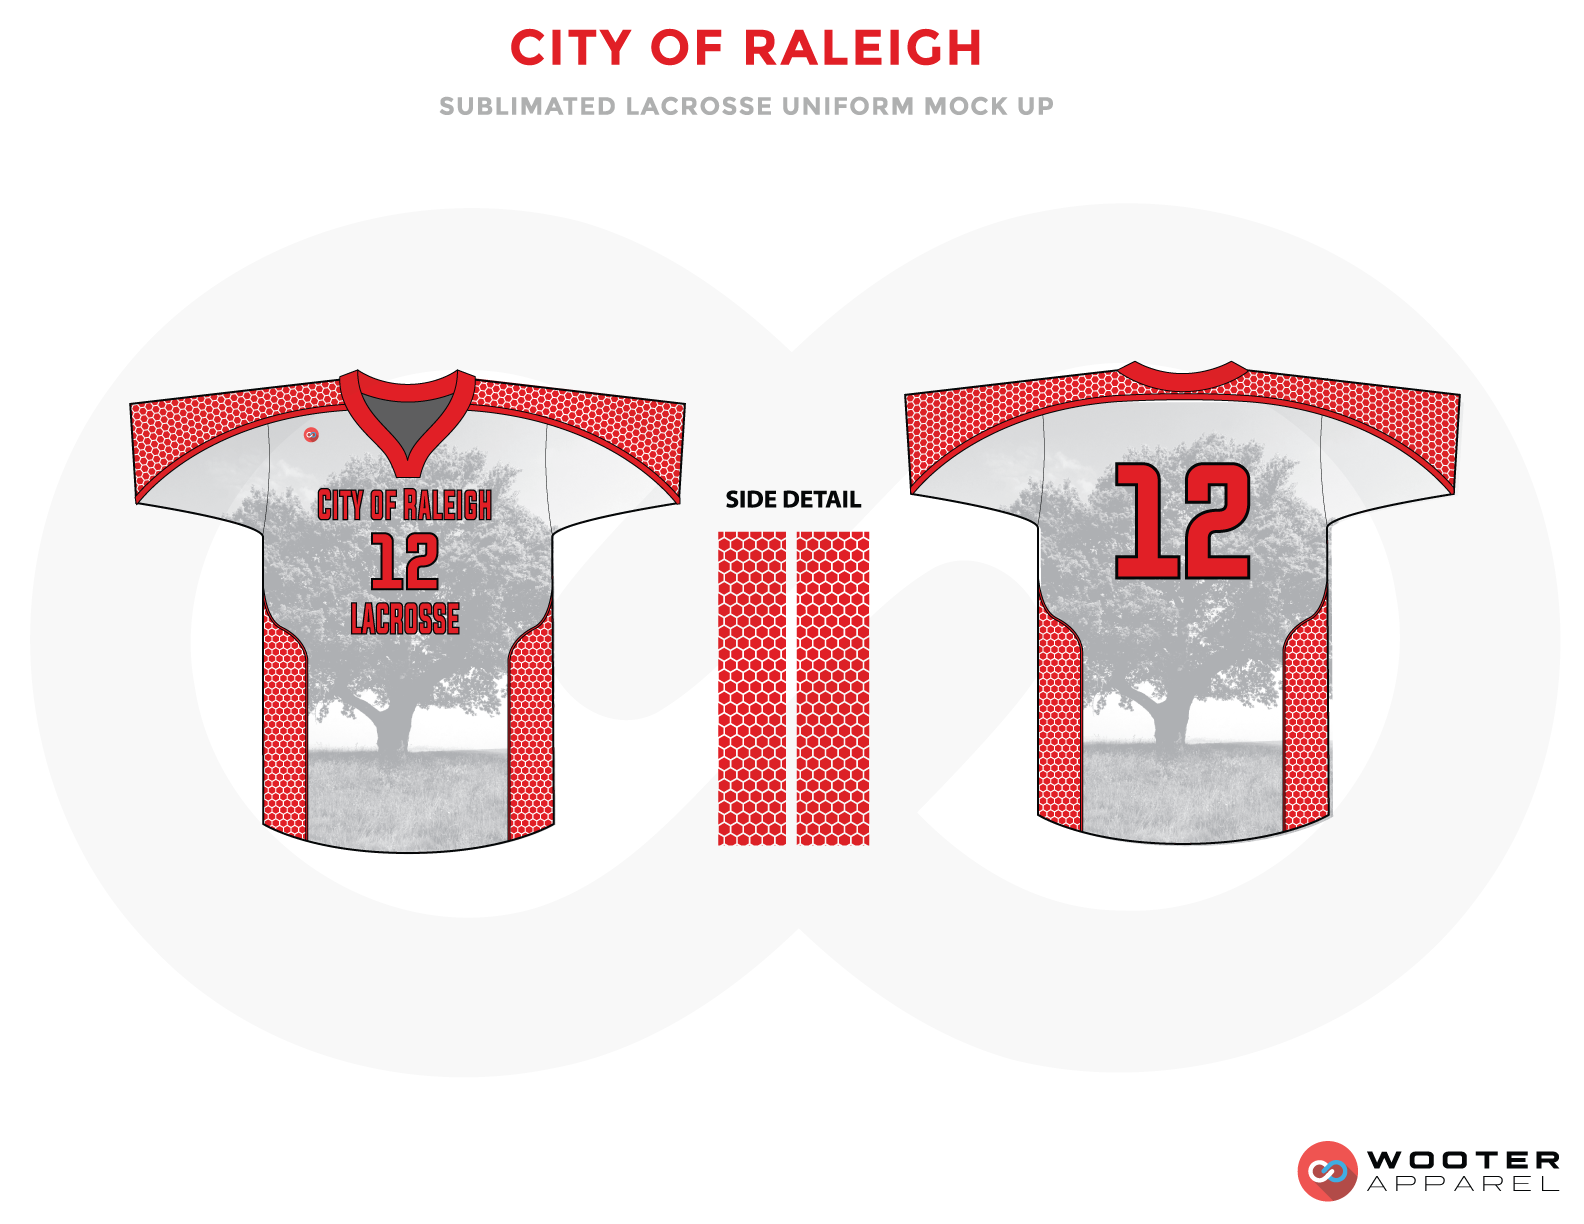 City Of Raleigh Red and Gray White Lacrosse Uniforms, Jerseys